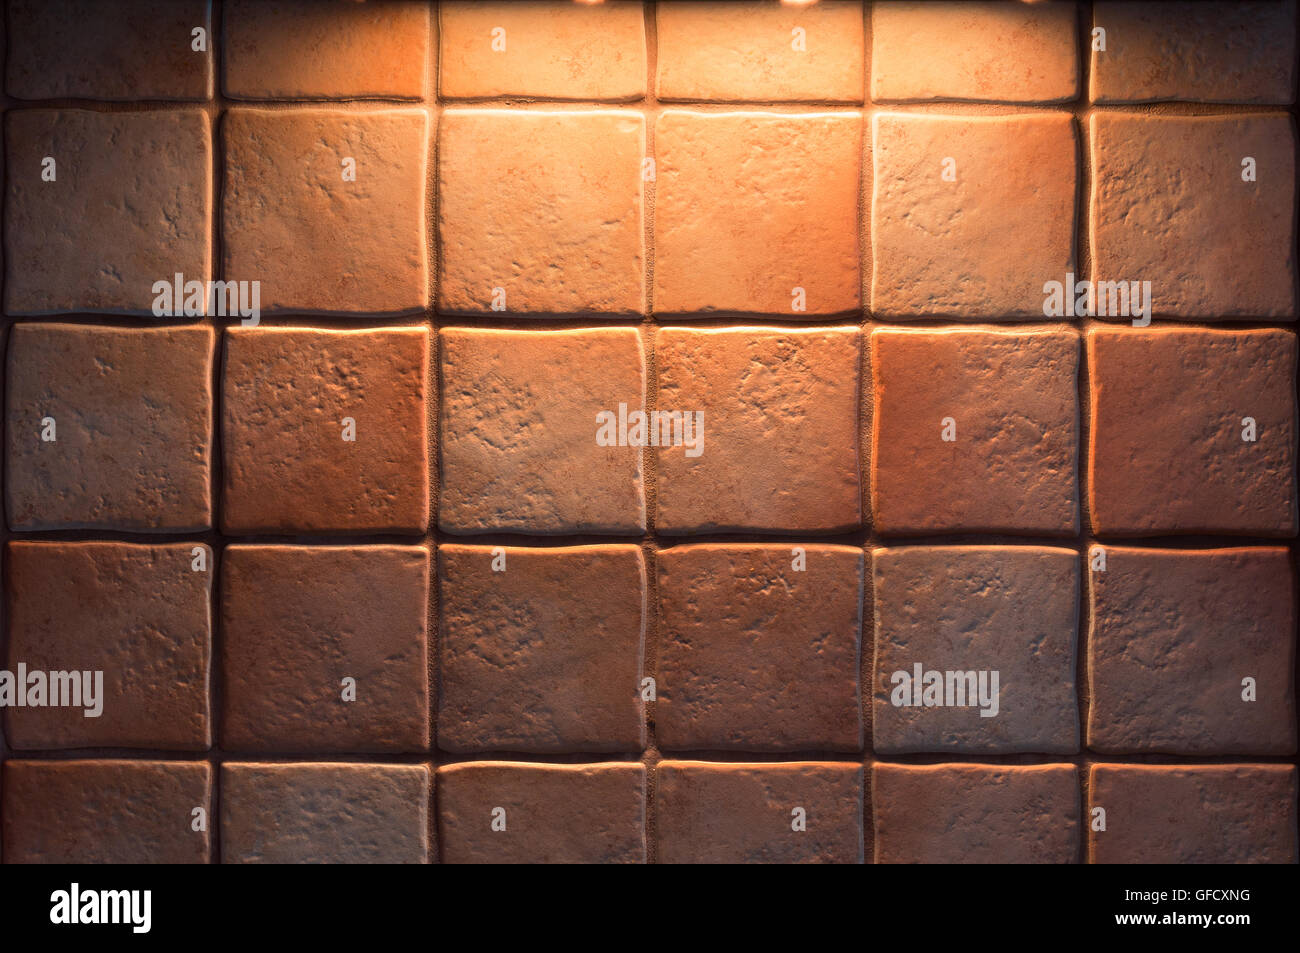 Texture of fine ceramic tiles for kitchen wall illuminated from above. Close up tiled background. - Stock Image